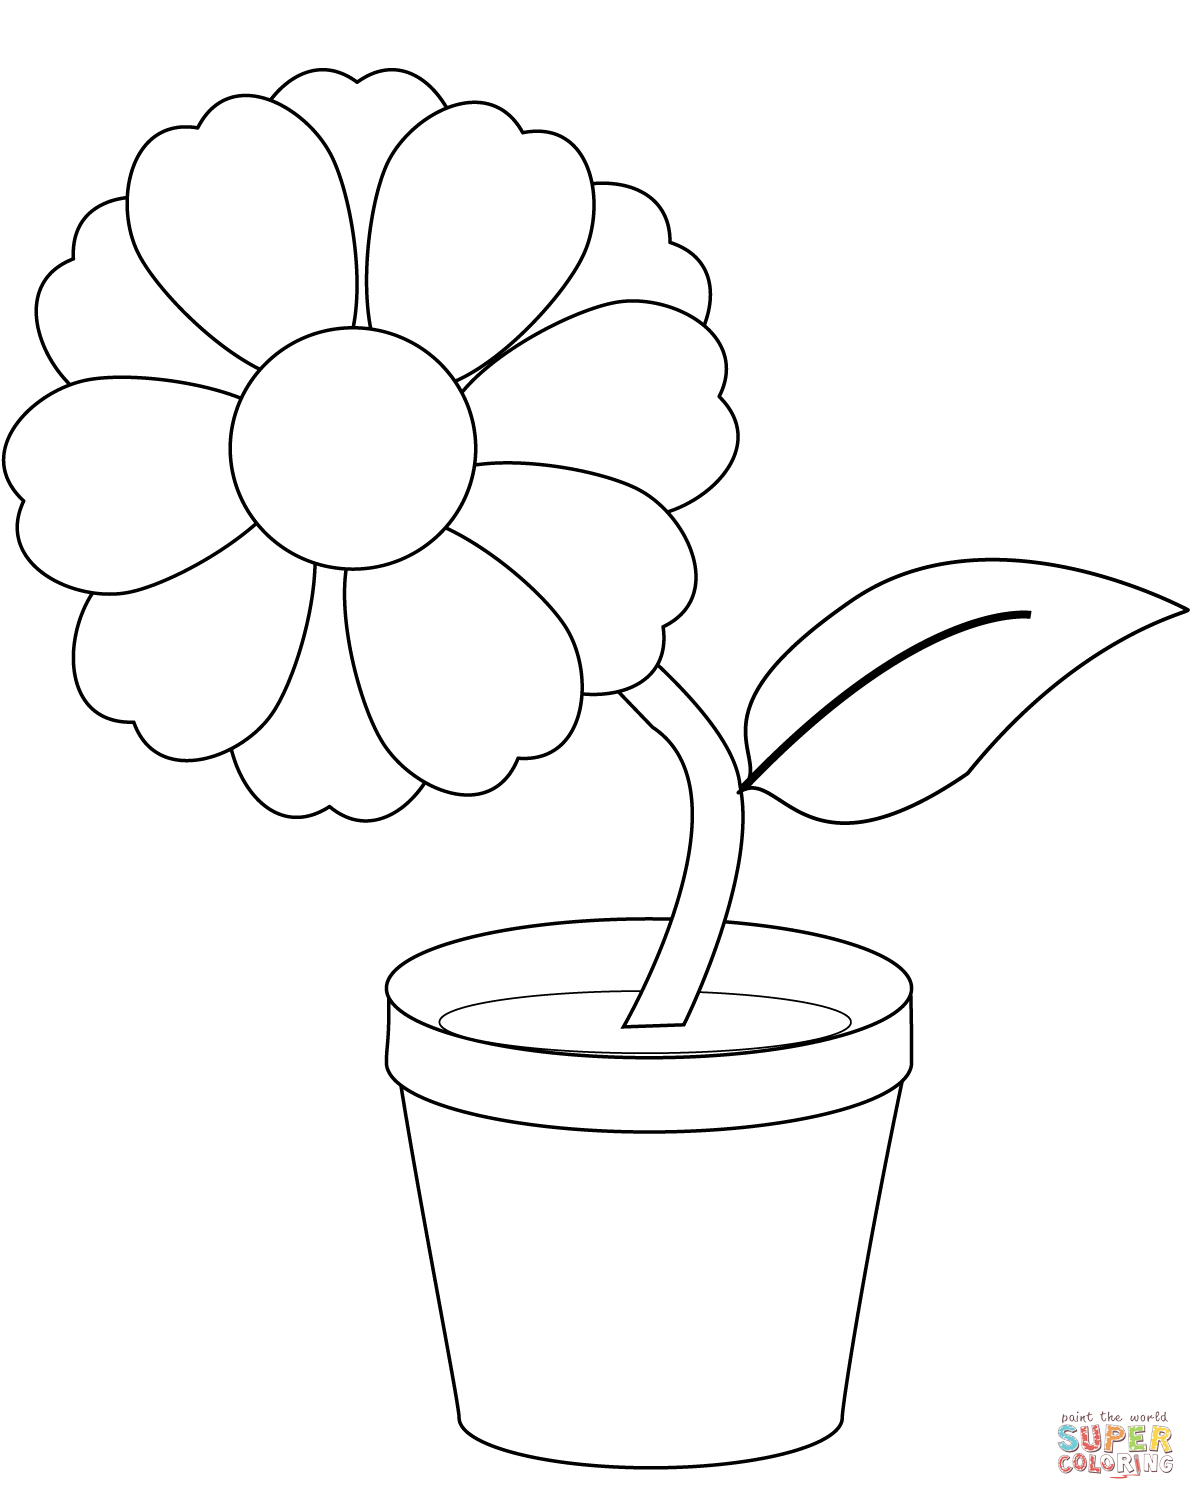 photo about Printable Flower Pot called Flower Pot Coloring Site Flower Within just A Pot Coloring Website page Absolutely free